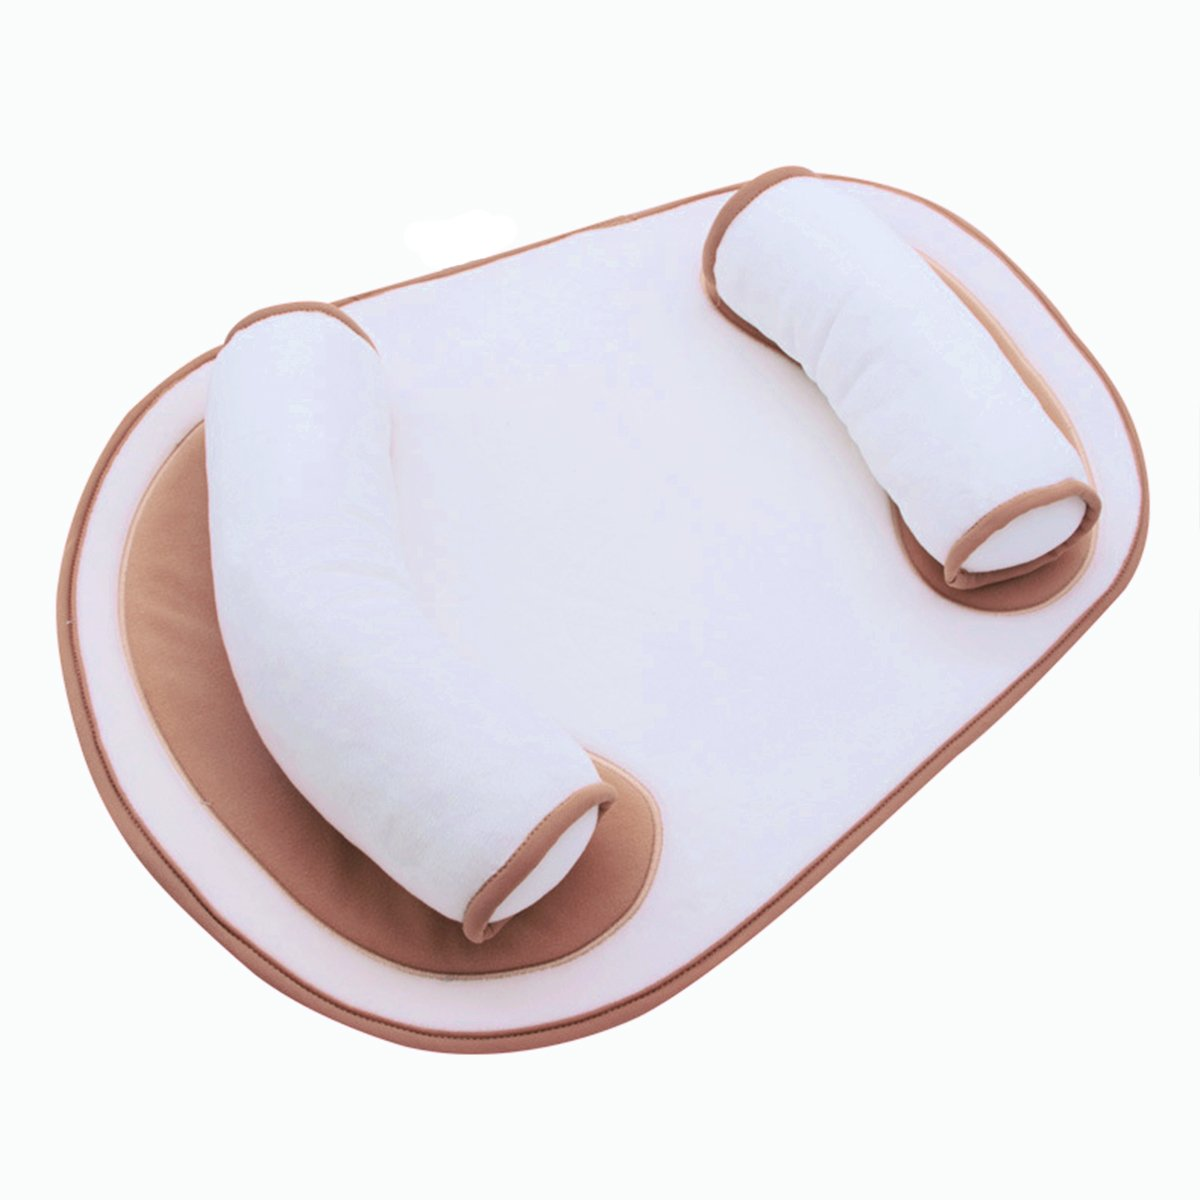 Baby Pillow Anti Roll Auxiliary with Adjustable Body Support Crib Bumper - Infant Nursing Sleeping Pillow, Baby Must Haves Lounger, Baby Bed Mattress for Newbornattress for Newborn BALMOST